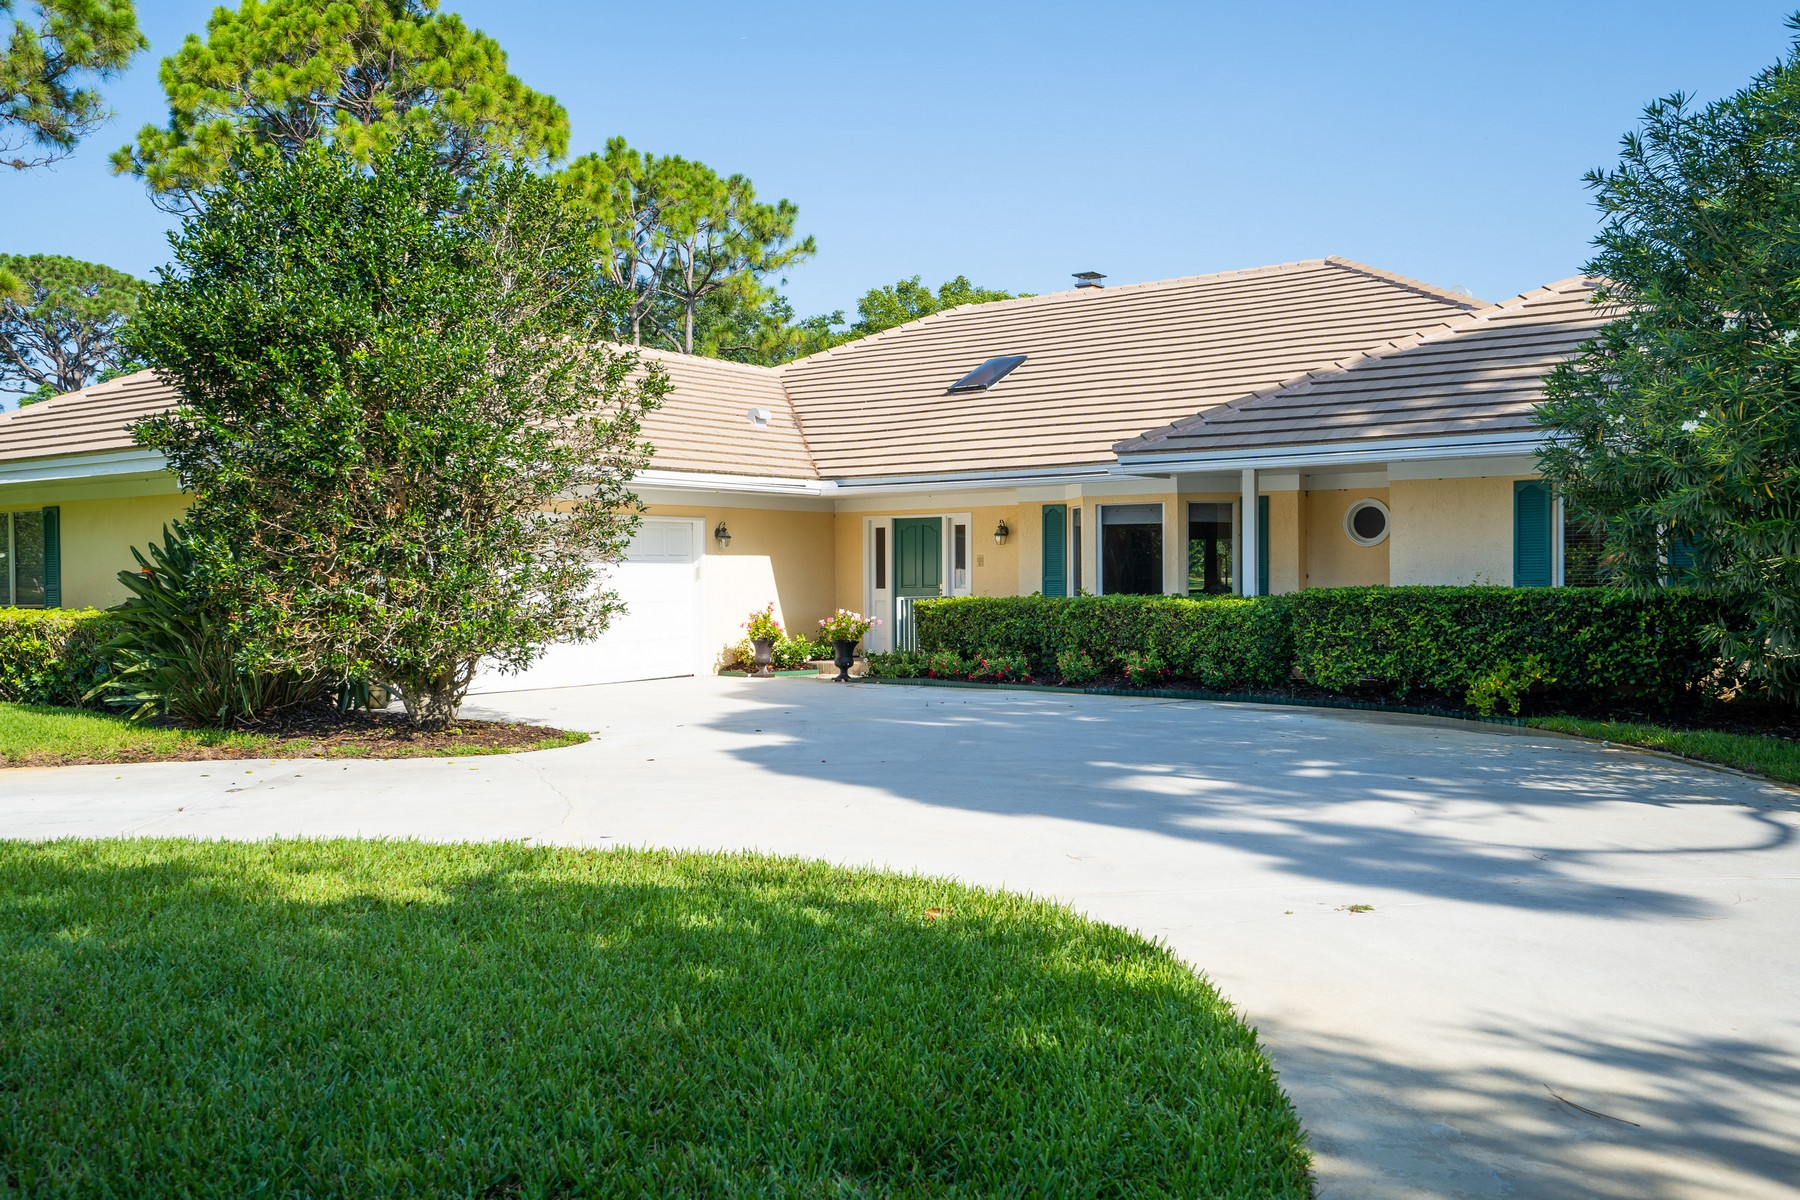 Single Family Homes for Sale at Four Bedroom Home on the Golf Course 5825 Glen Eagle Lane Vero Beach, Florida 32967 United States